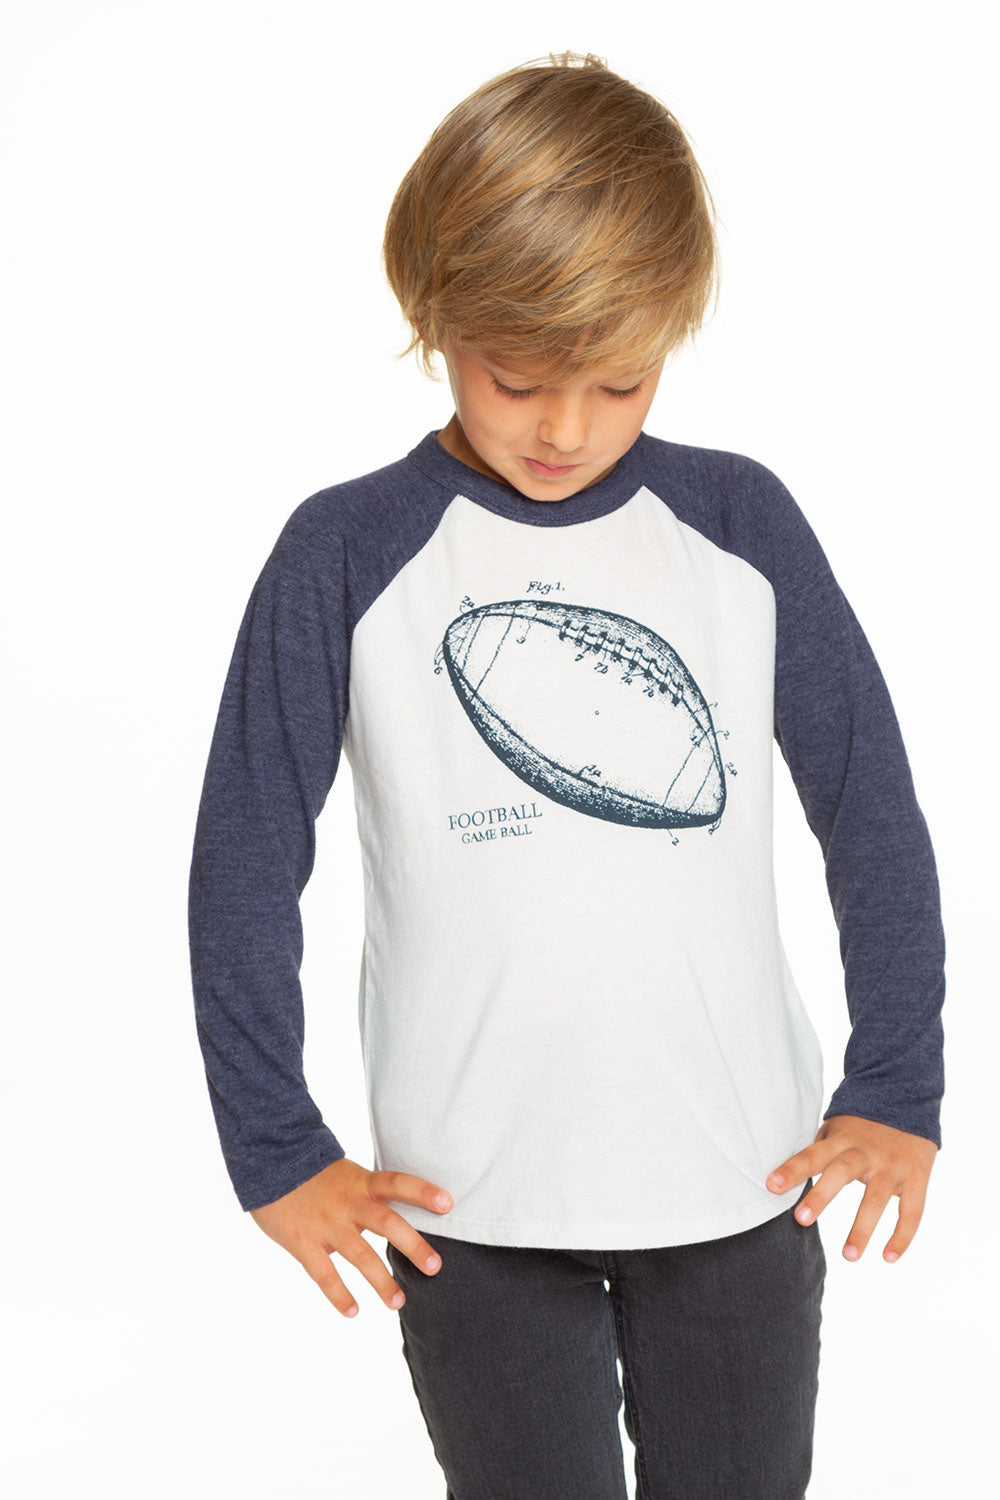 Football Sketch BOYS chaserbrand4.myshopify.com